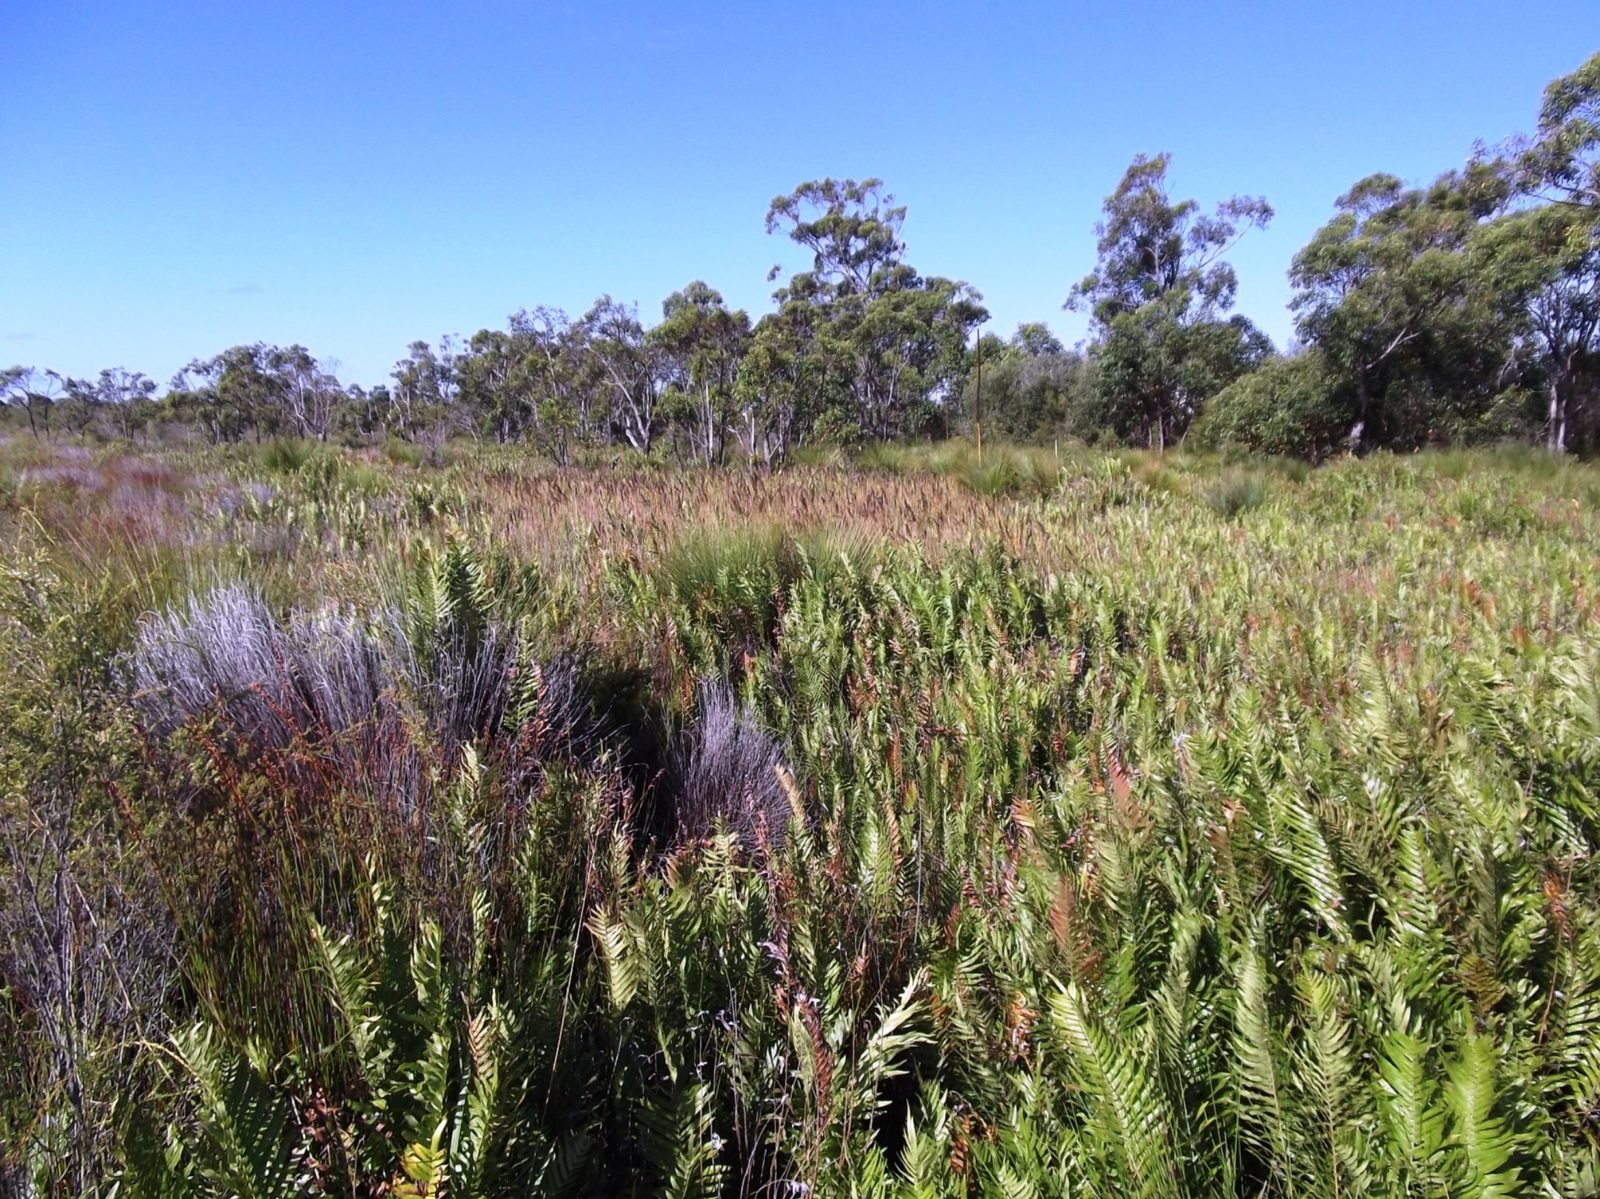 Coastal heath in Pine Ridge